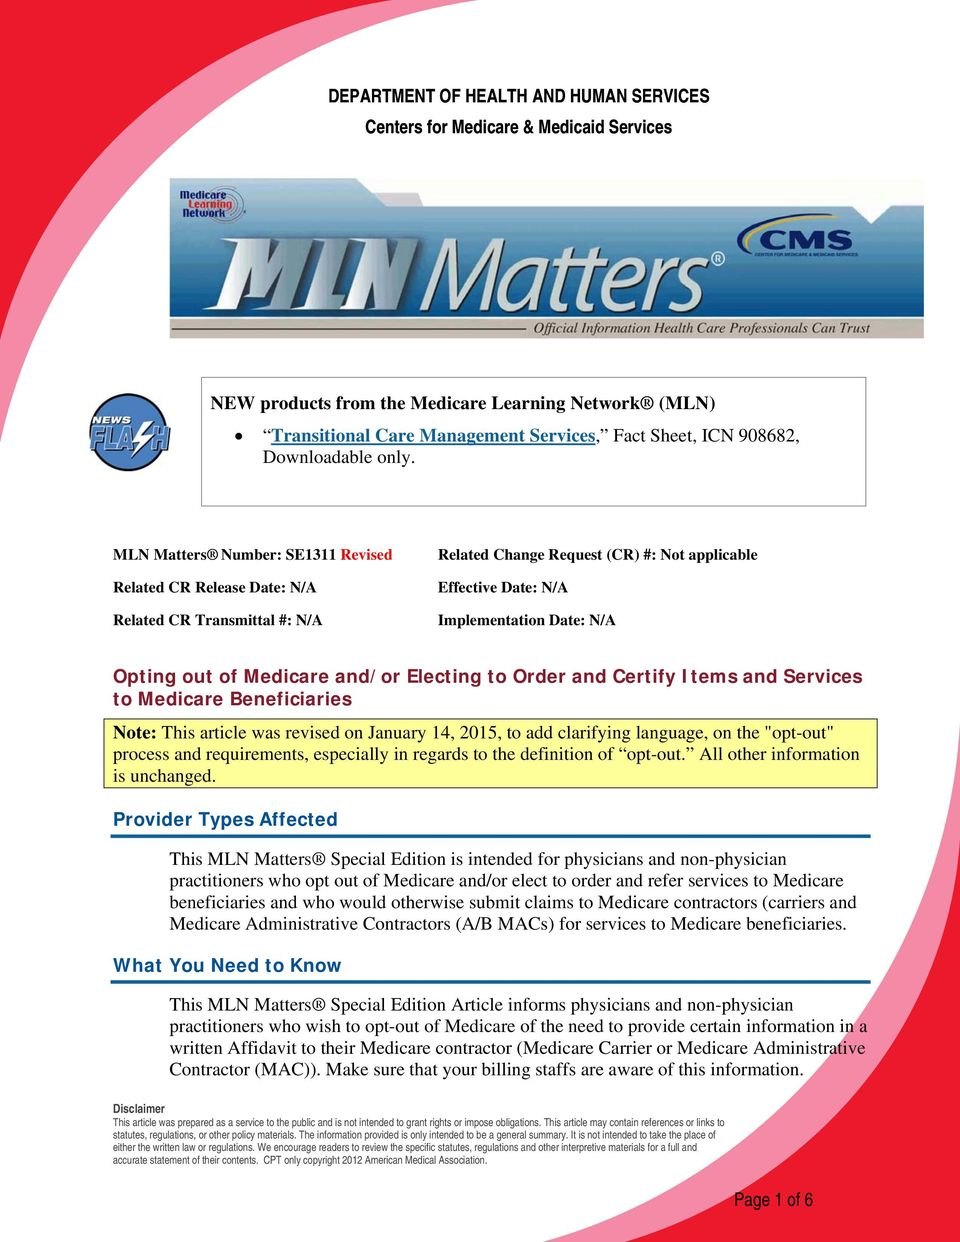 MLN Matters Number: SE1311 Revised Related CR Release Date: N/A Related CR Transmittal #: N/A Related Change Request (CR) #: Not applicable Effective Date: N/A Implementation Date: N/A Opting out of